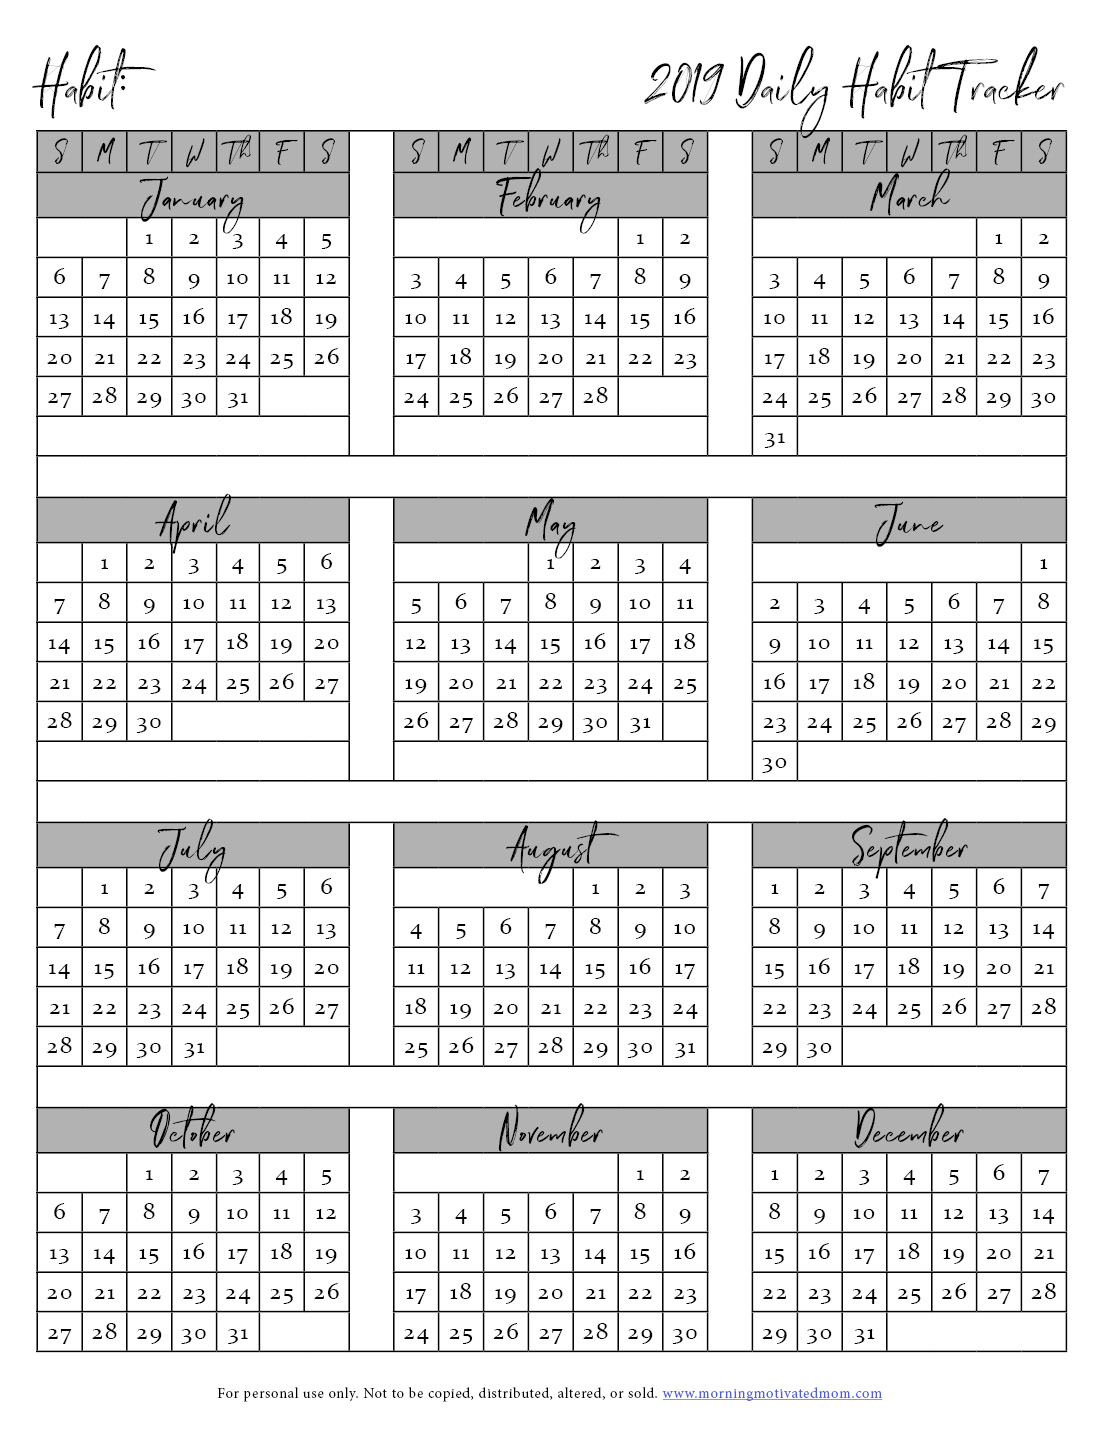 picture regarding Habit Tracker Printable Free called Absolutely free Printable Behavior Tracker Early morning Influenced Mother